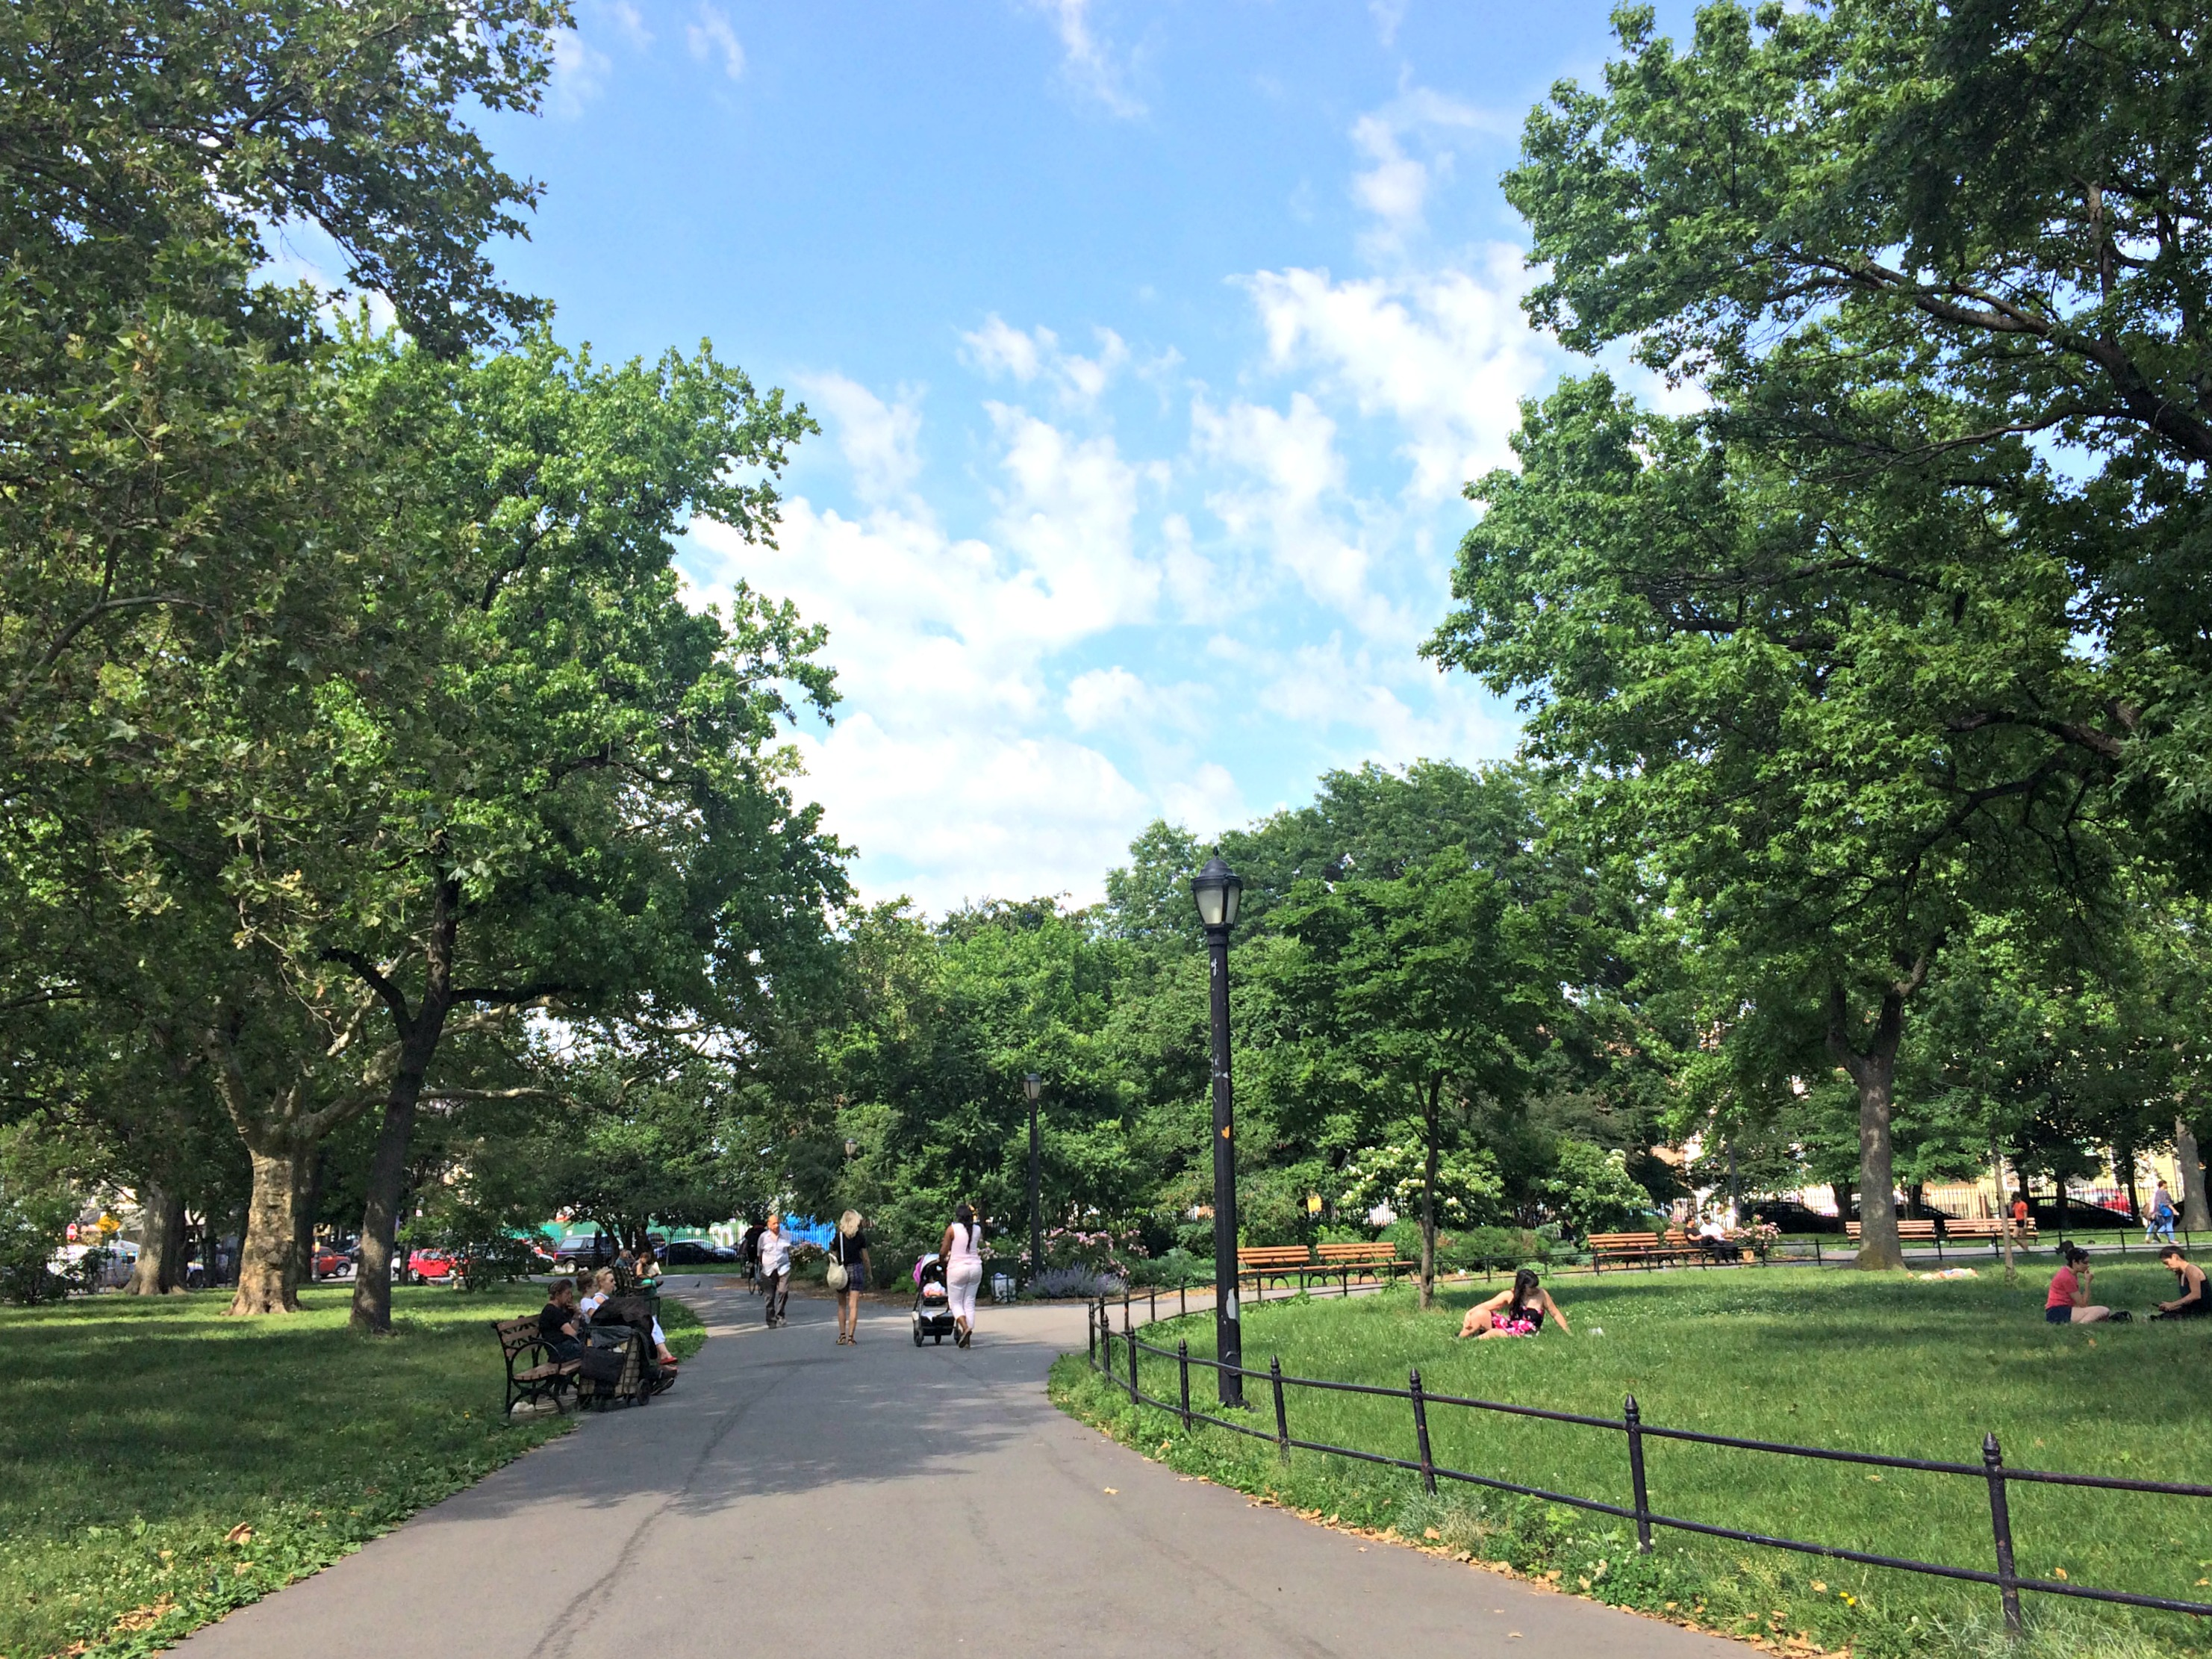 Williamsburg Park